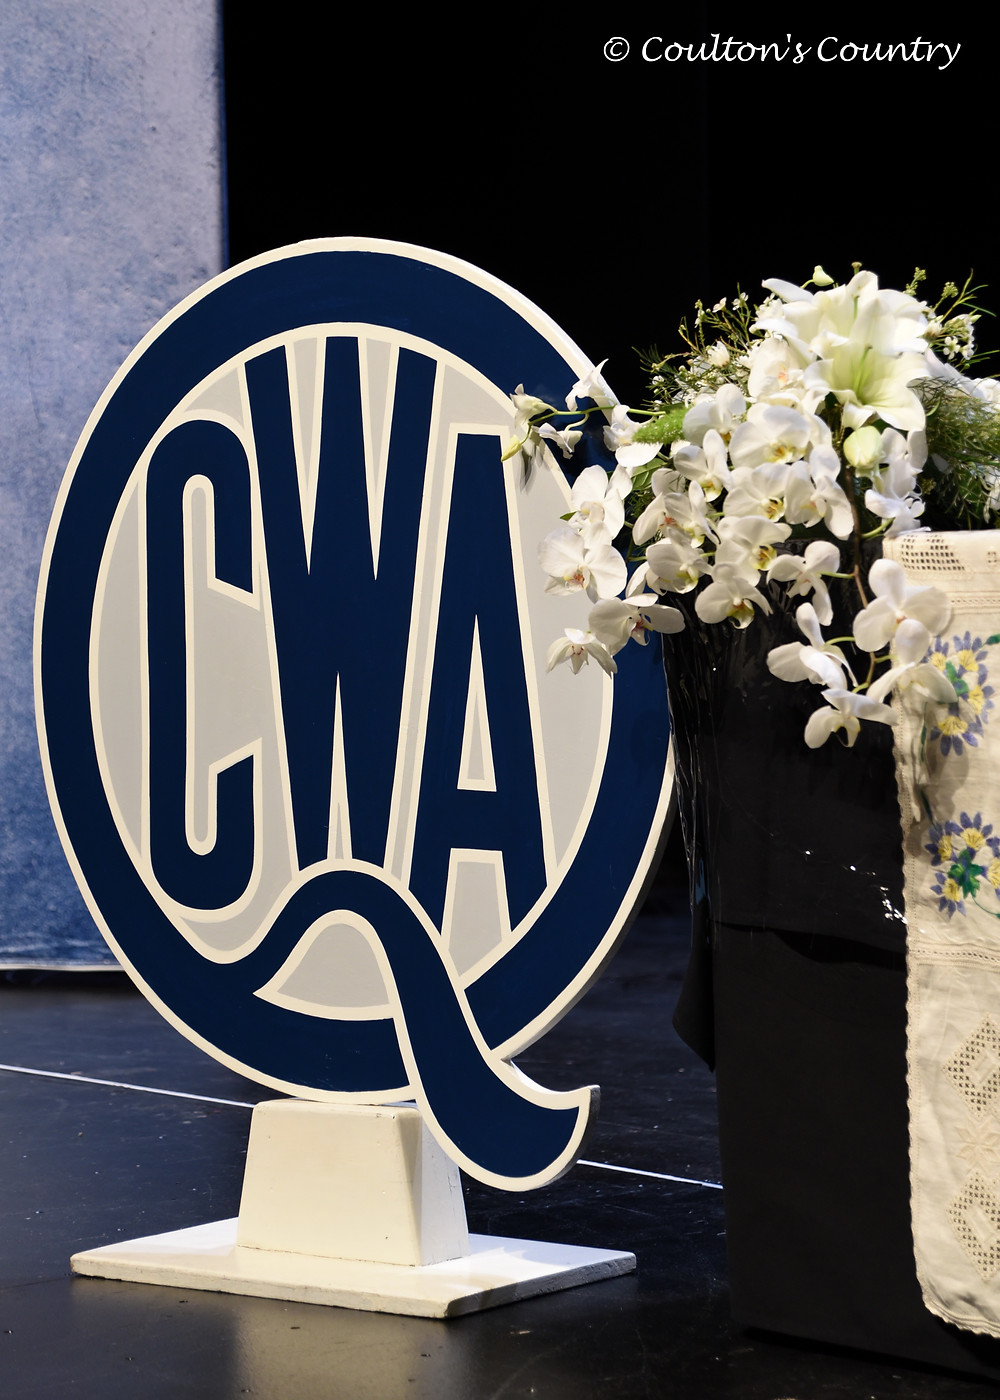 QCWA work tirelessly behind the scenes to help those in need and just lending a helping hand.